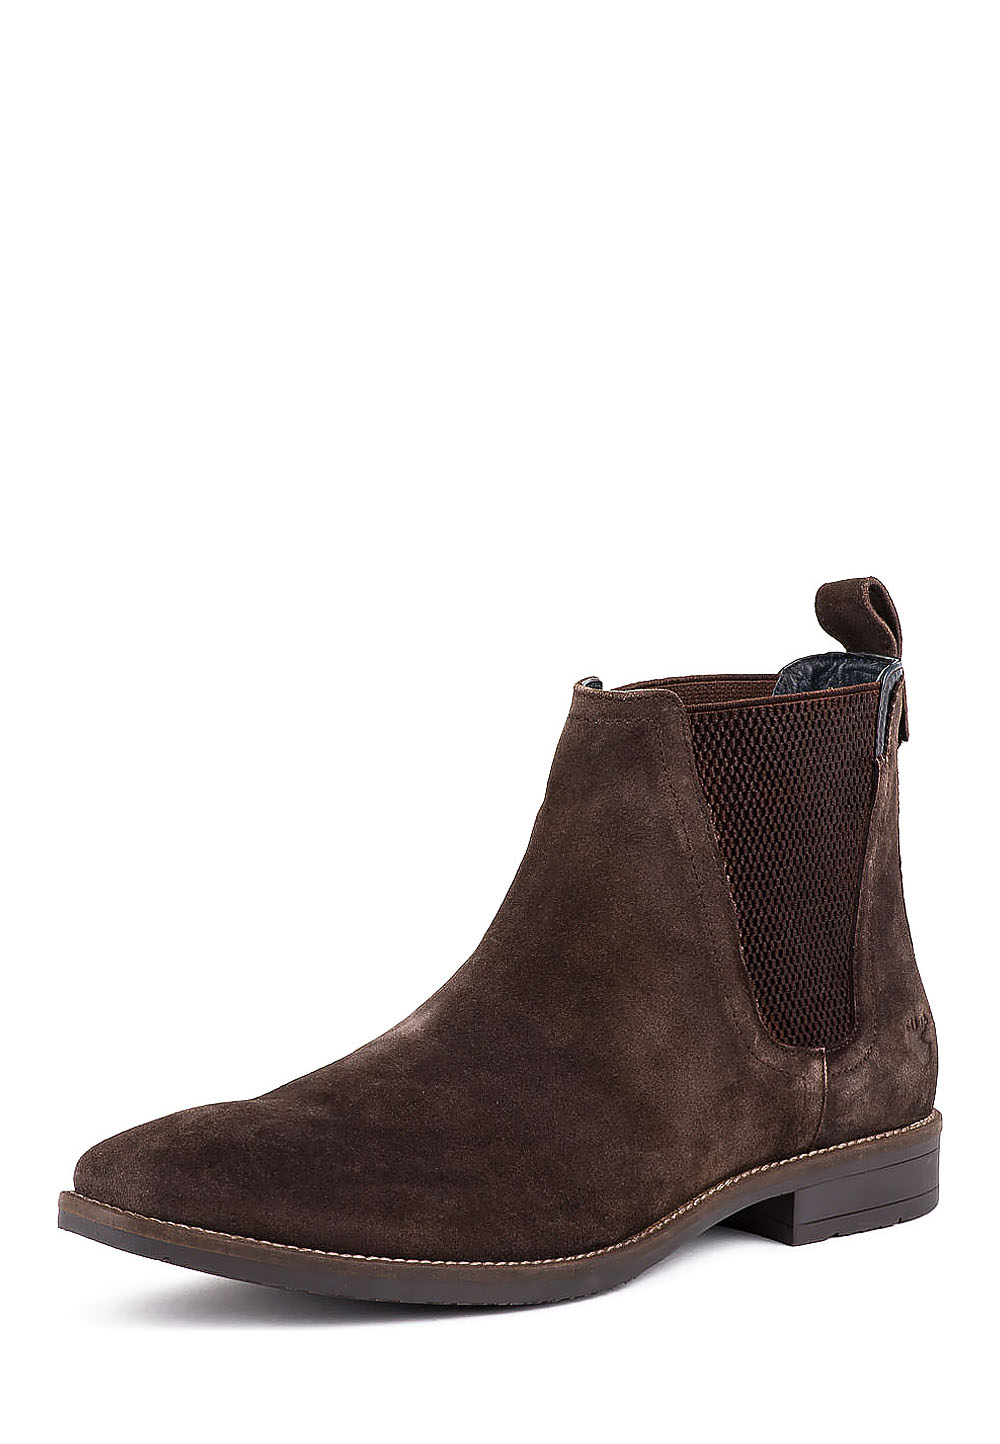 Goodwin Smith Chelsea-Boots Finchley, Leder, braun   Schuhe > Boots > Chelsea-Boots   Braun   Goodwin Smith